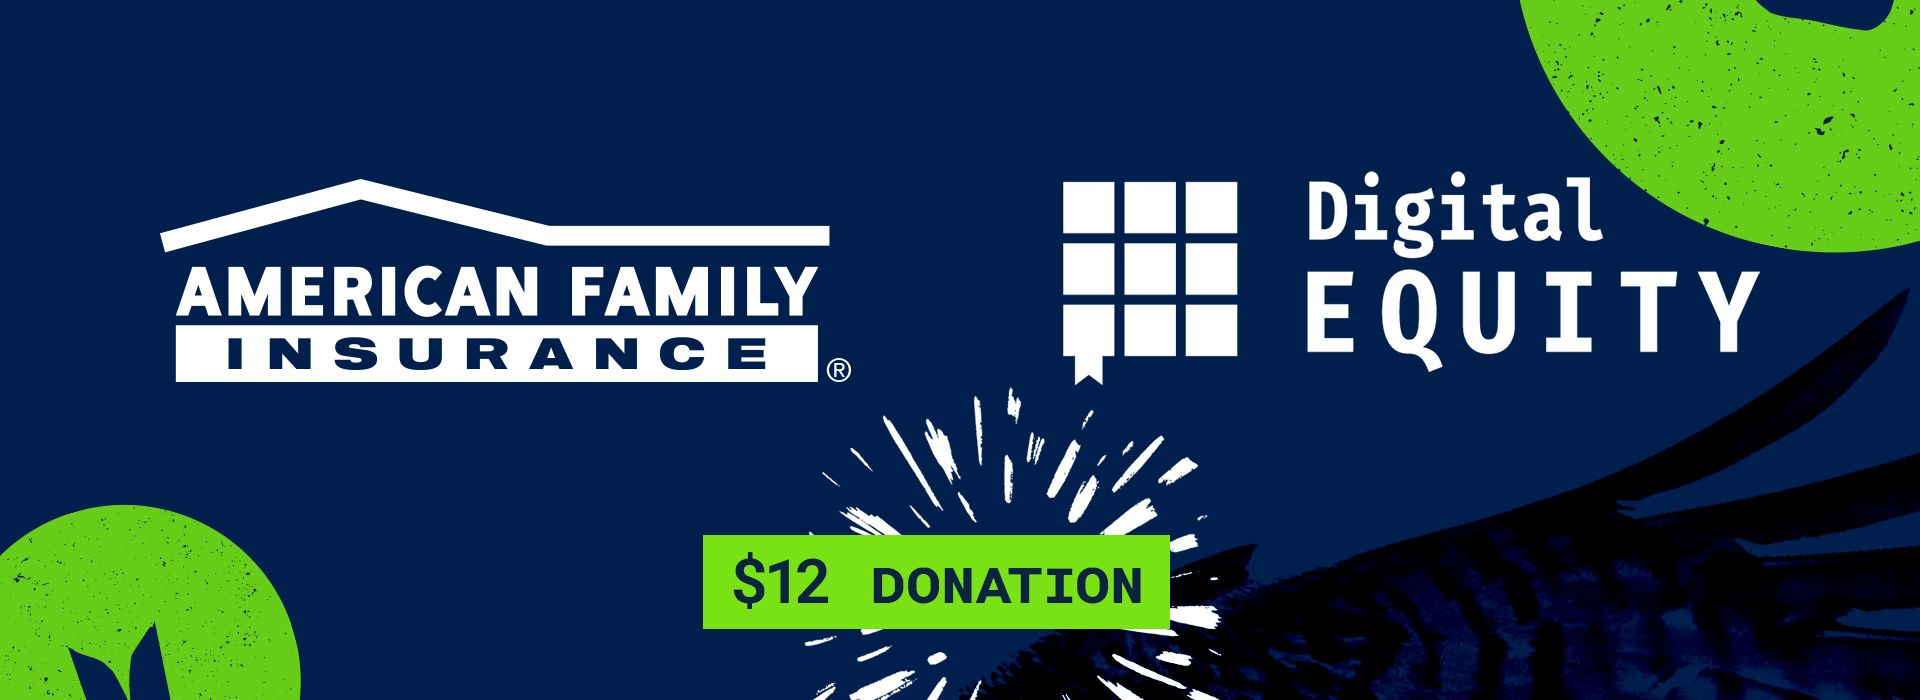 American Family Insurance & Digital Equity Initiative